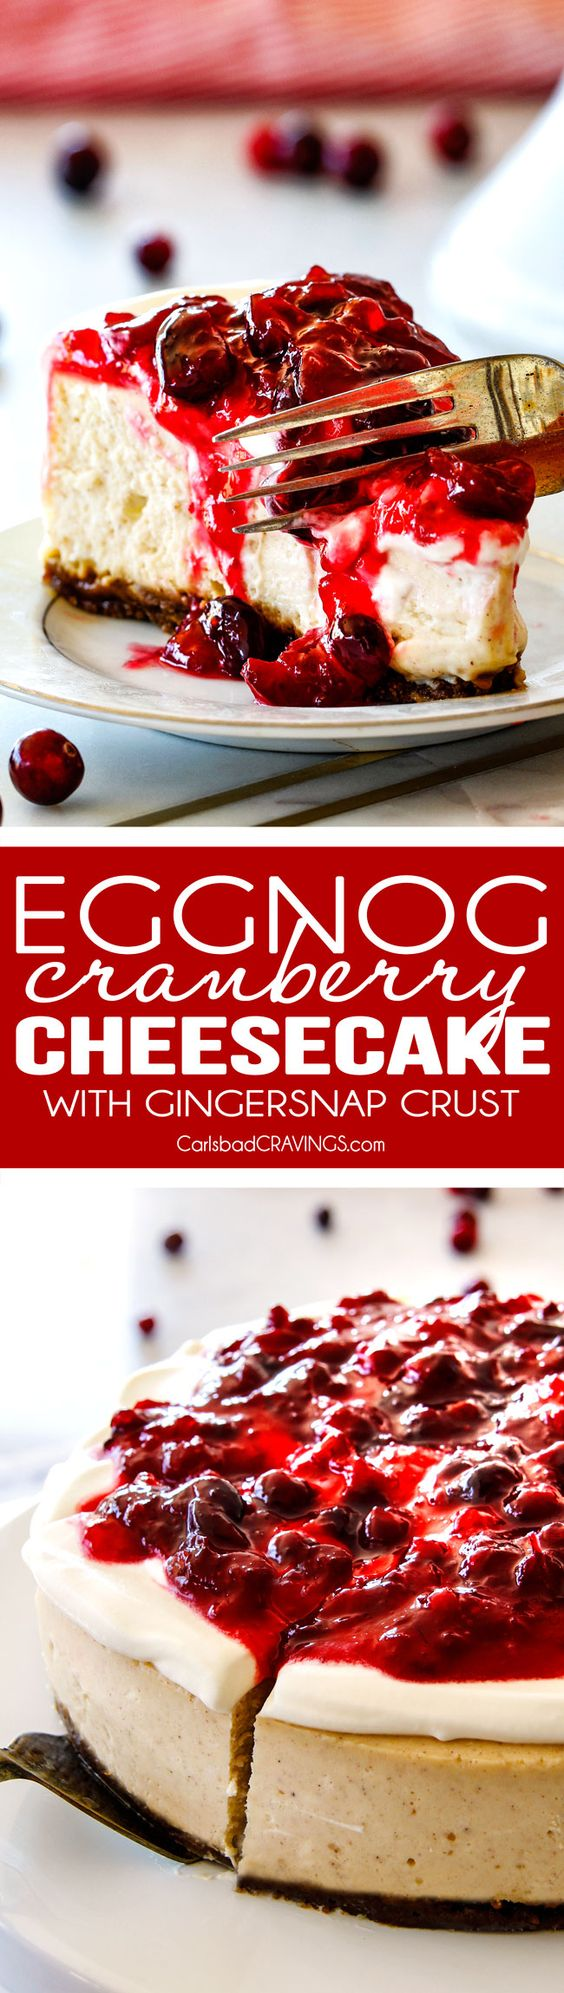 Cranberry Eggnog Cheesecake with Gingersnap Crust - this cheesecake is divine! Its become a family tradition because it tastes just like creamy eggnog and the Eggnog Cream Topping and Cranberry Topping make this worlds better than any other I've tried! A must for Christmas!